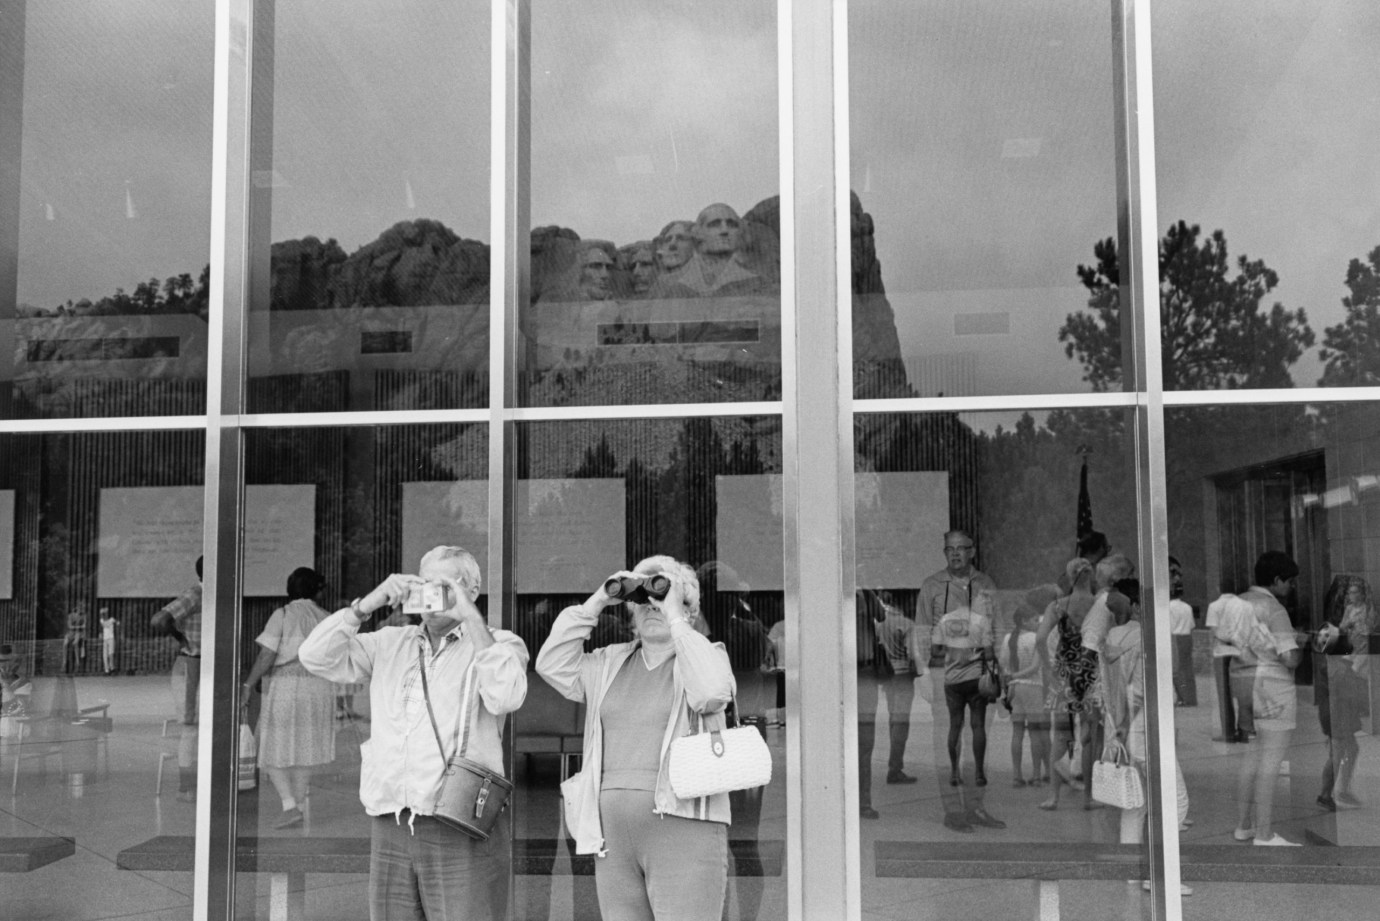 Black-and-white photograph of an elderly couple looking with binoculars towards the left. Mt. Rushmore is reflected in the windows behind them.